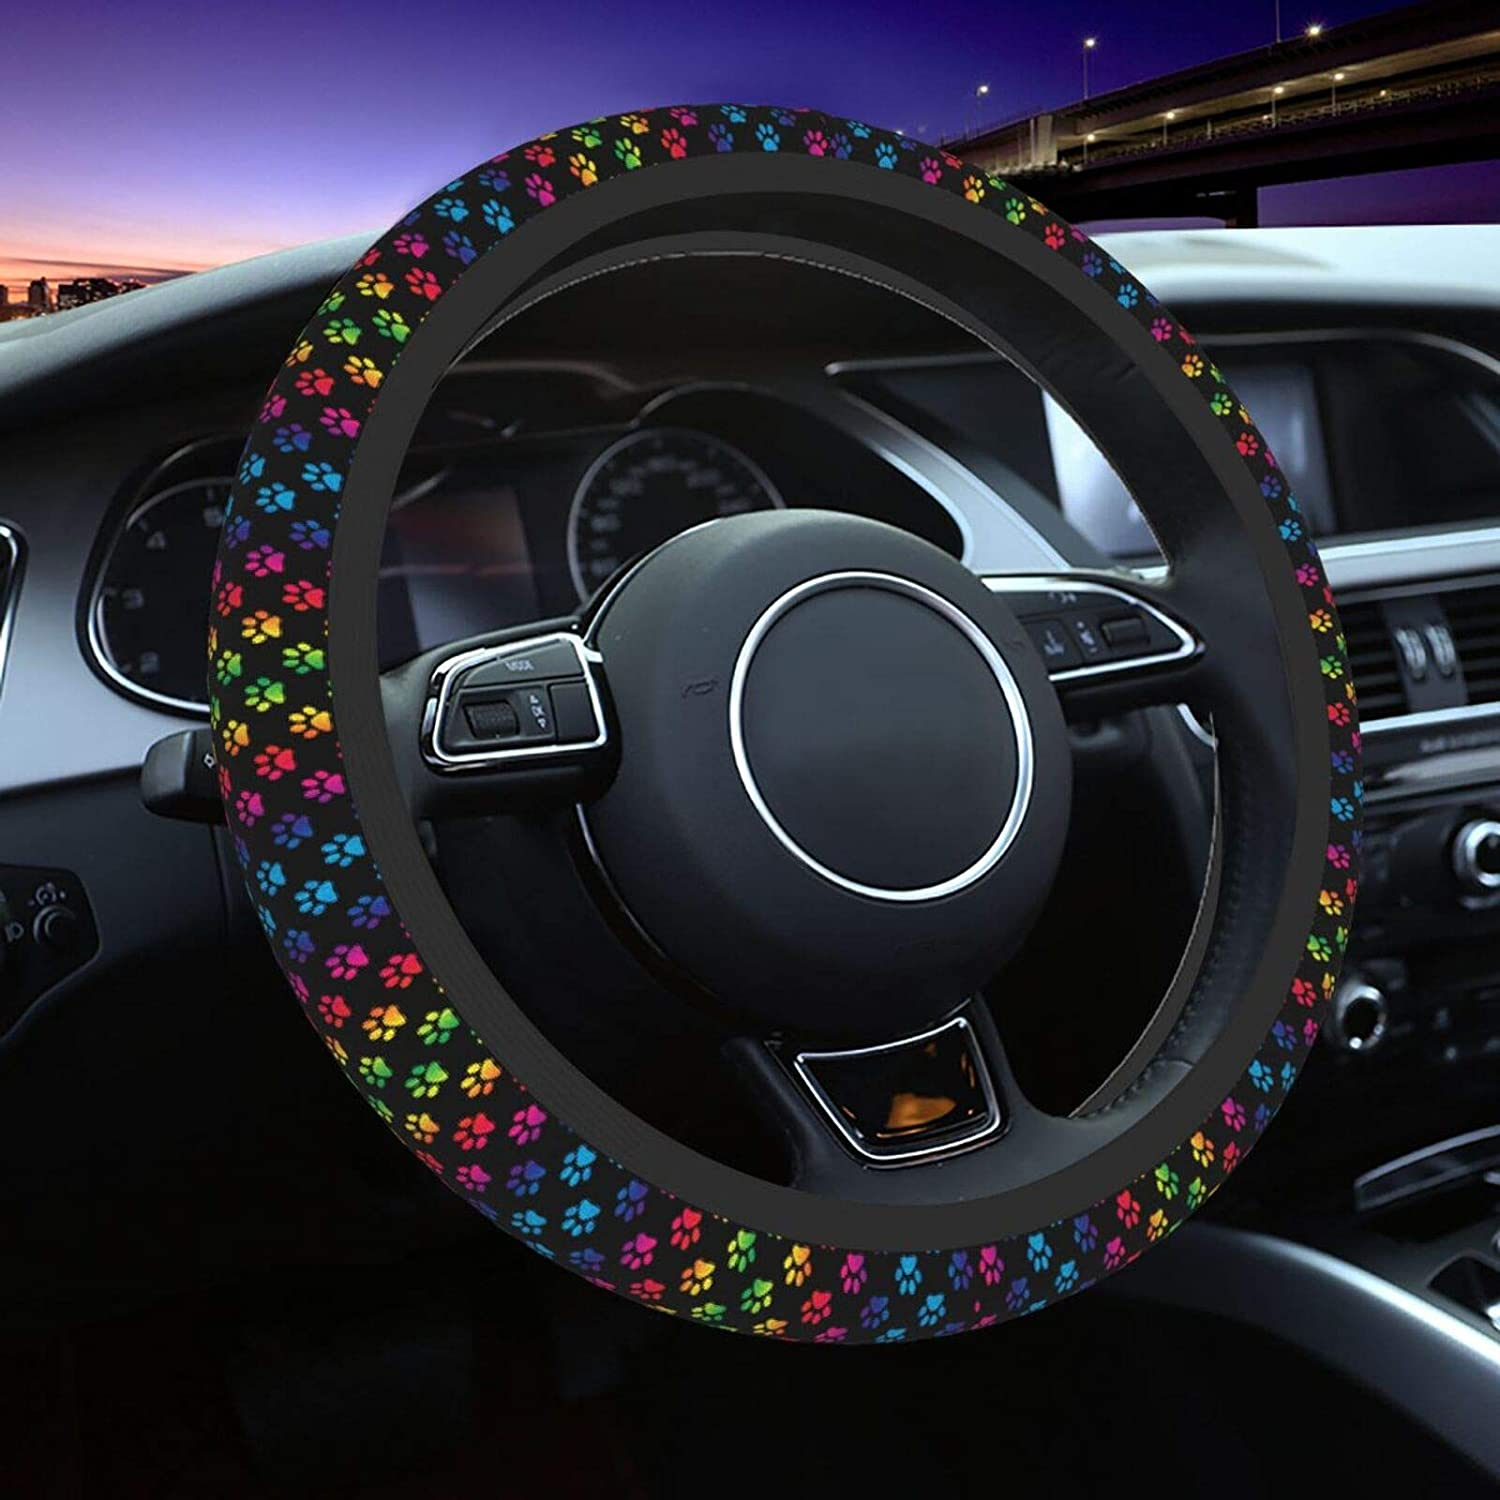 Jedenkuku Rubber Car Decor Women Men Girls Steering Wheel Cover Printing Protector Fit 15 Inch Automotive Interior Accessories